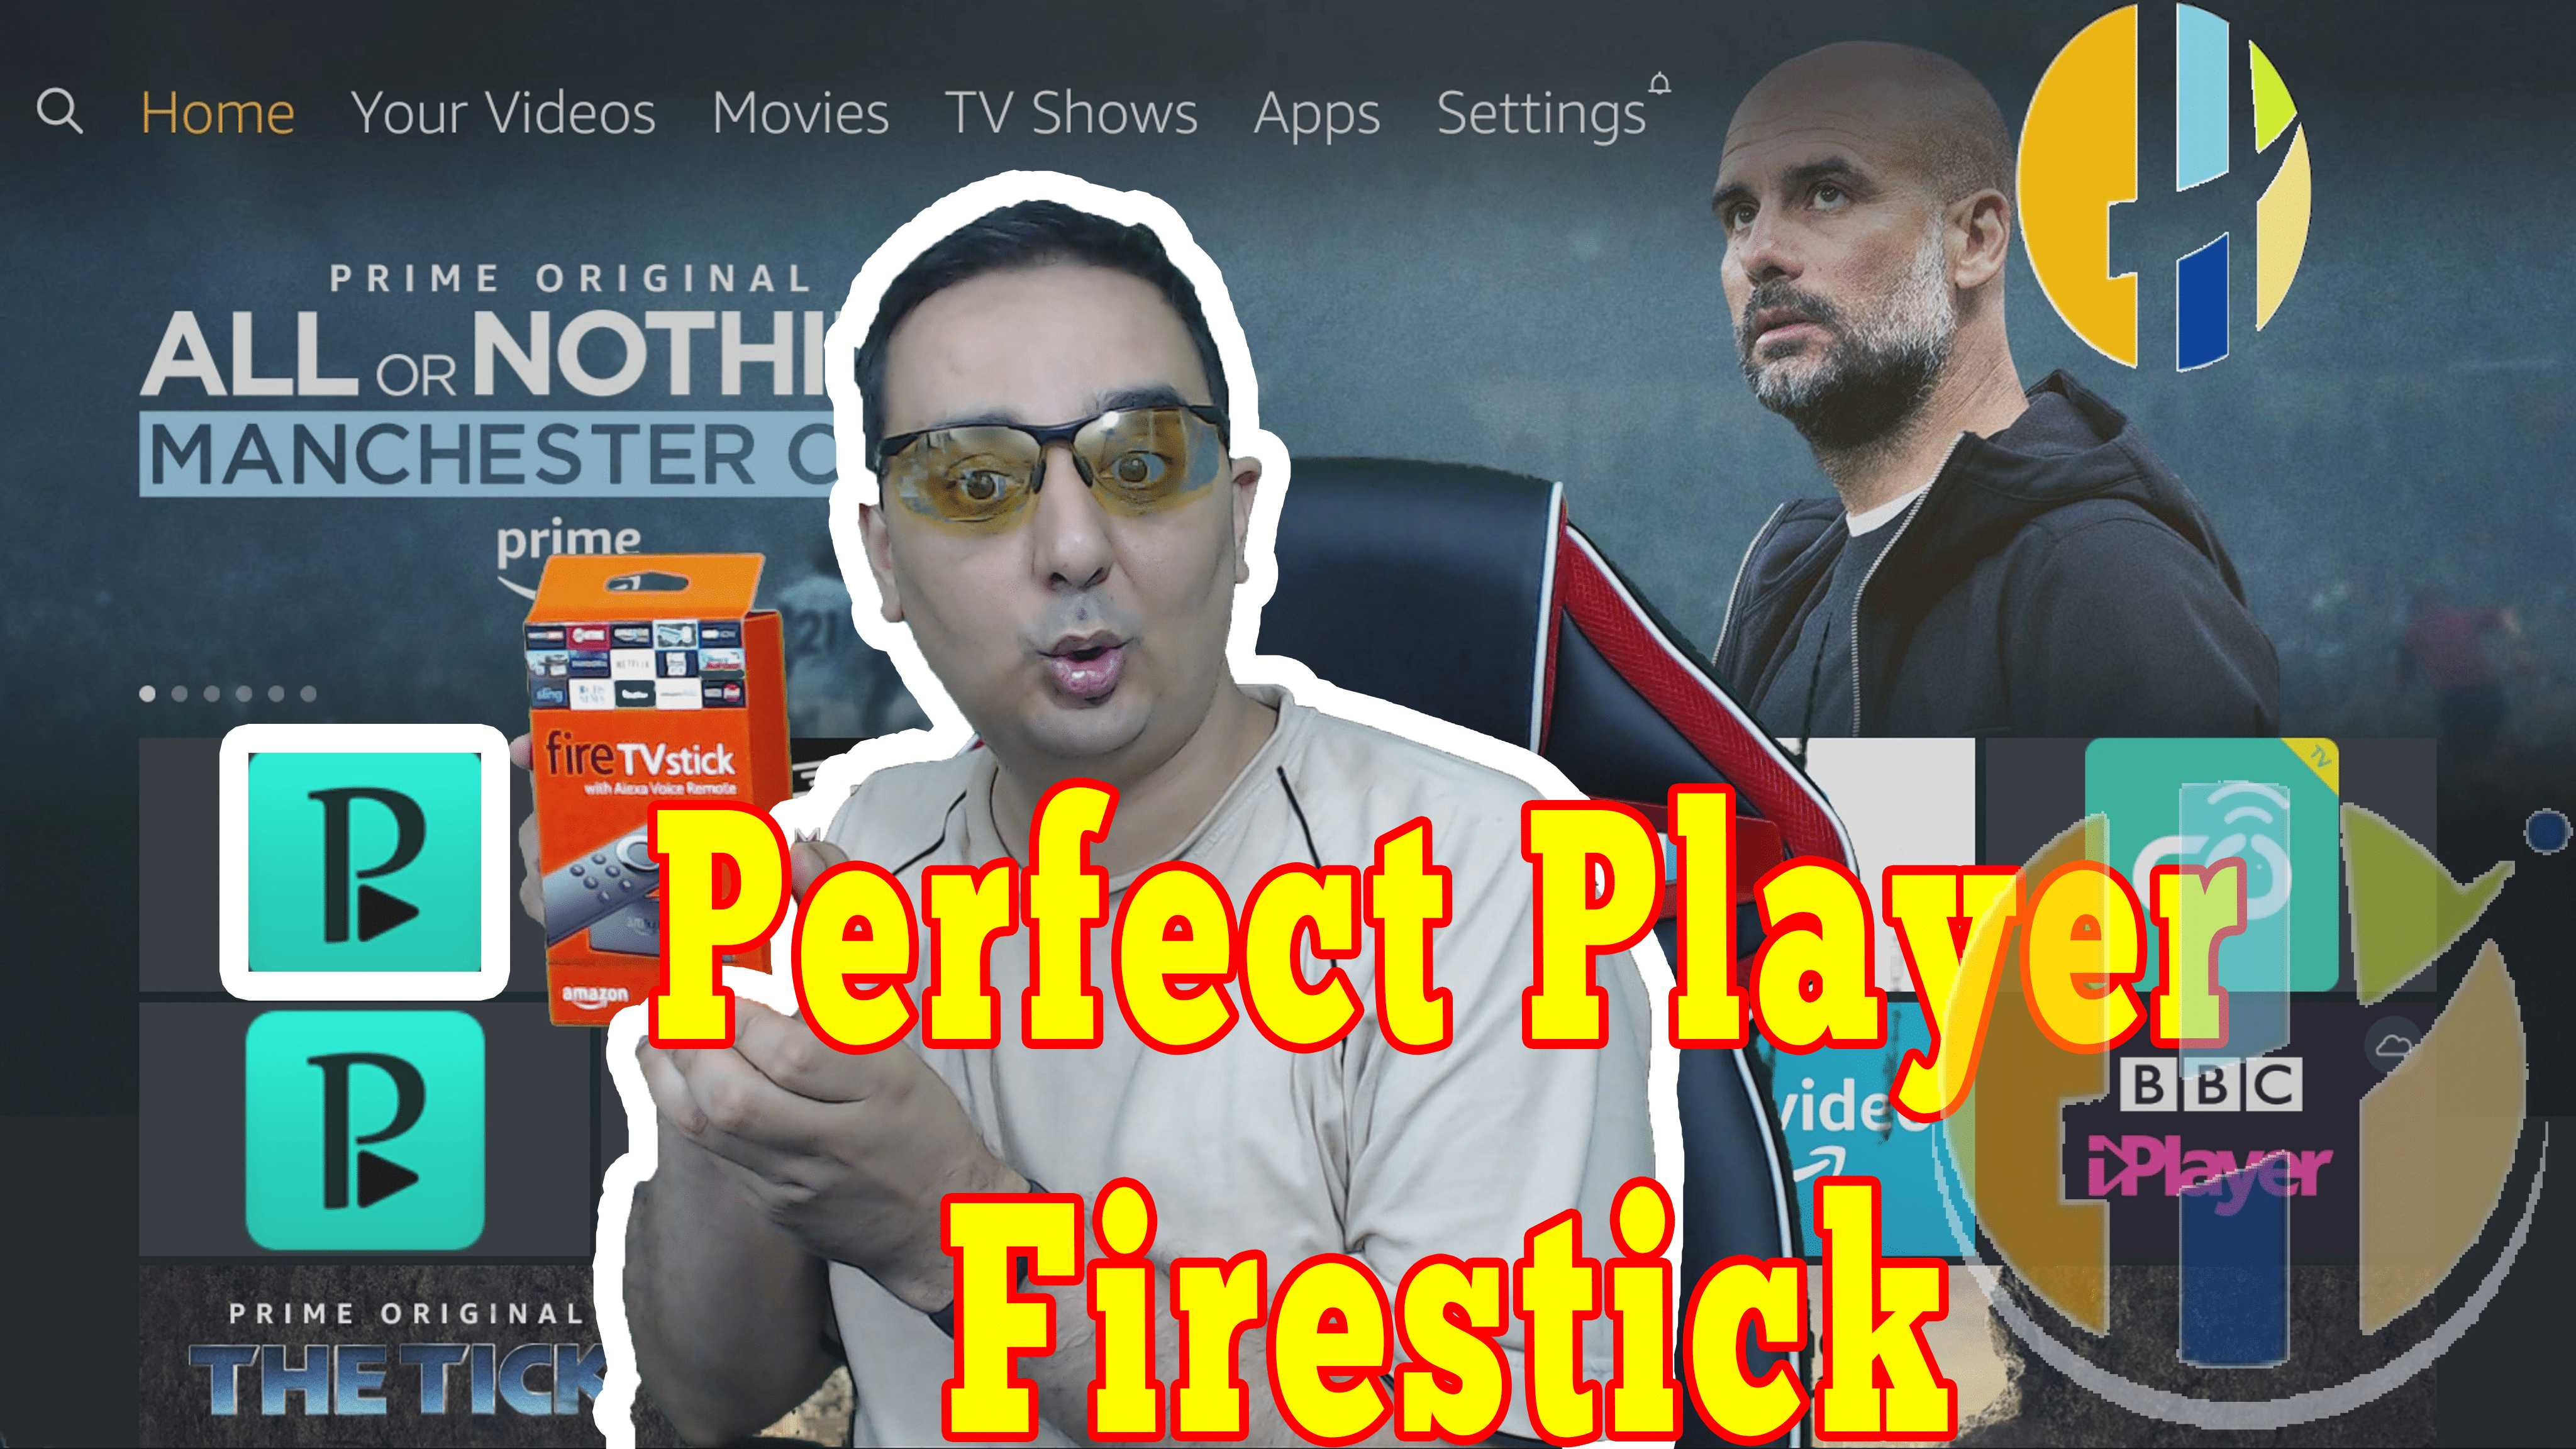 How to Install Perfect Player IPTV APK on the FireStick or Amazon